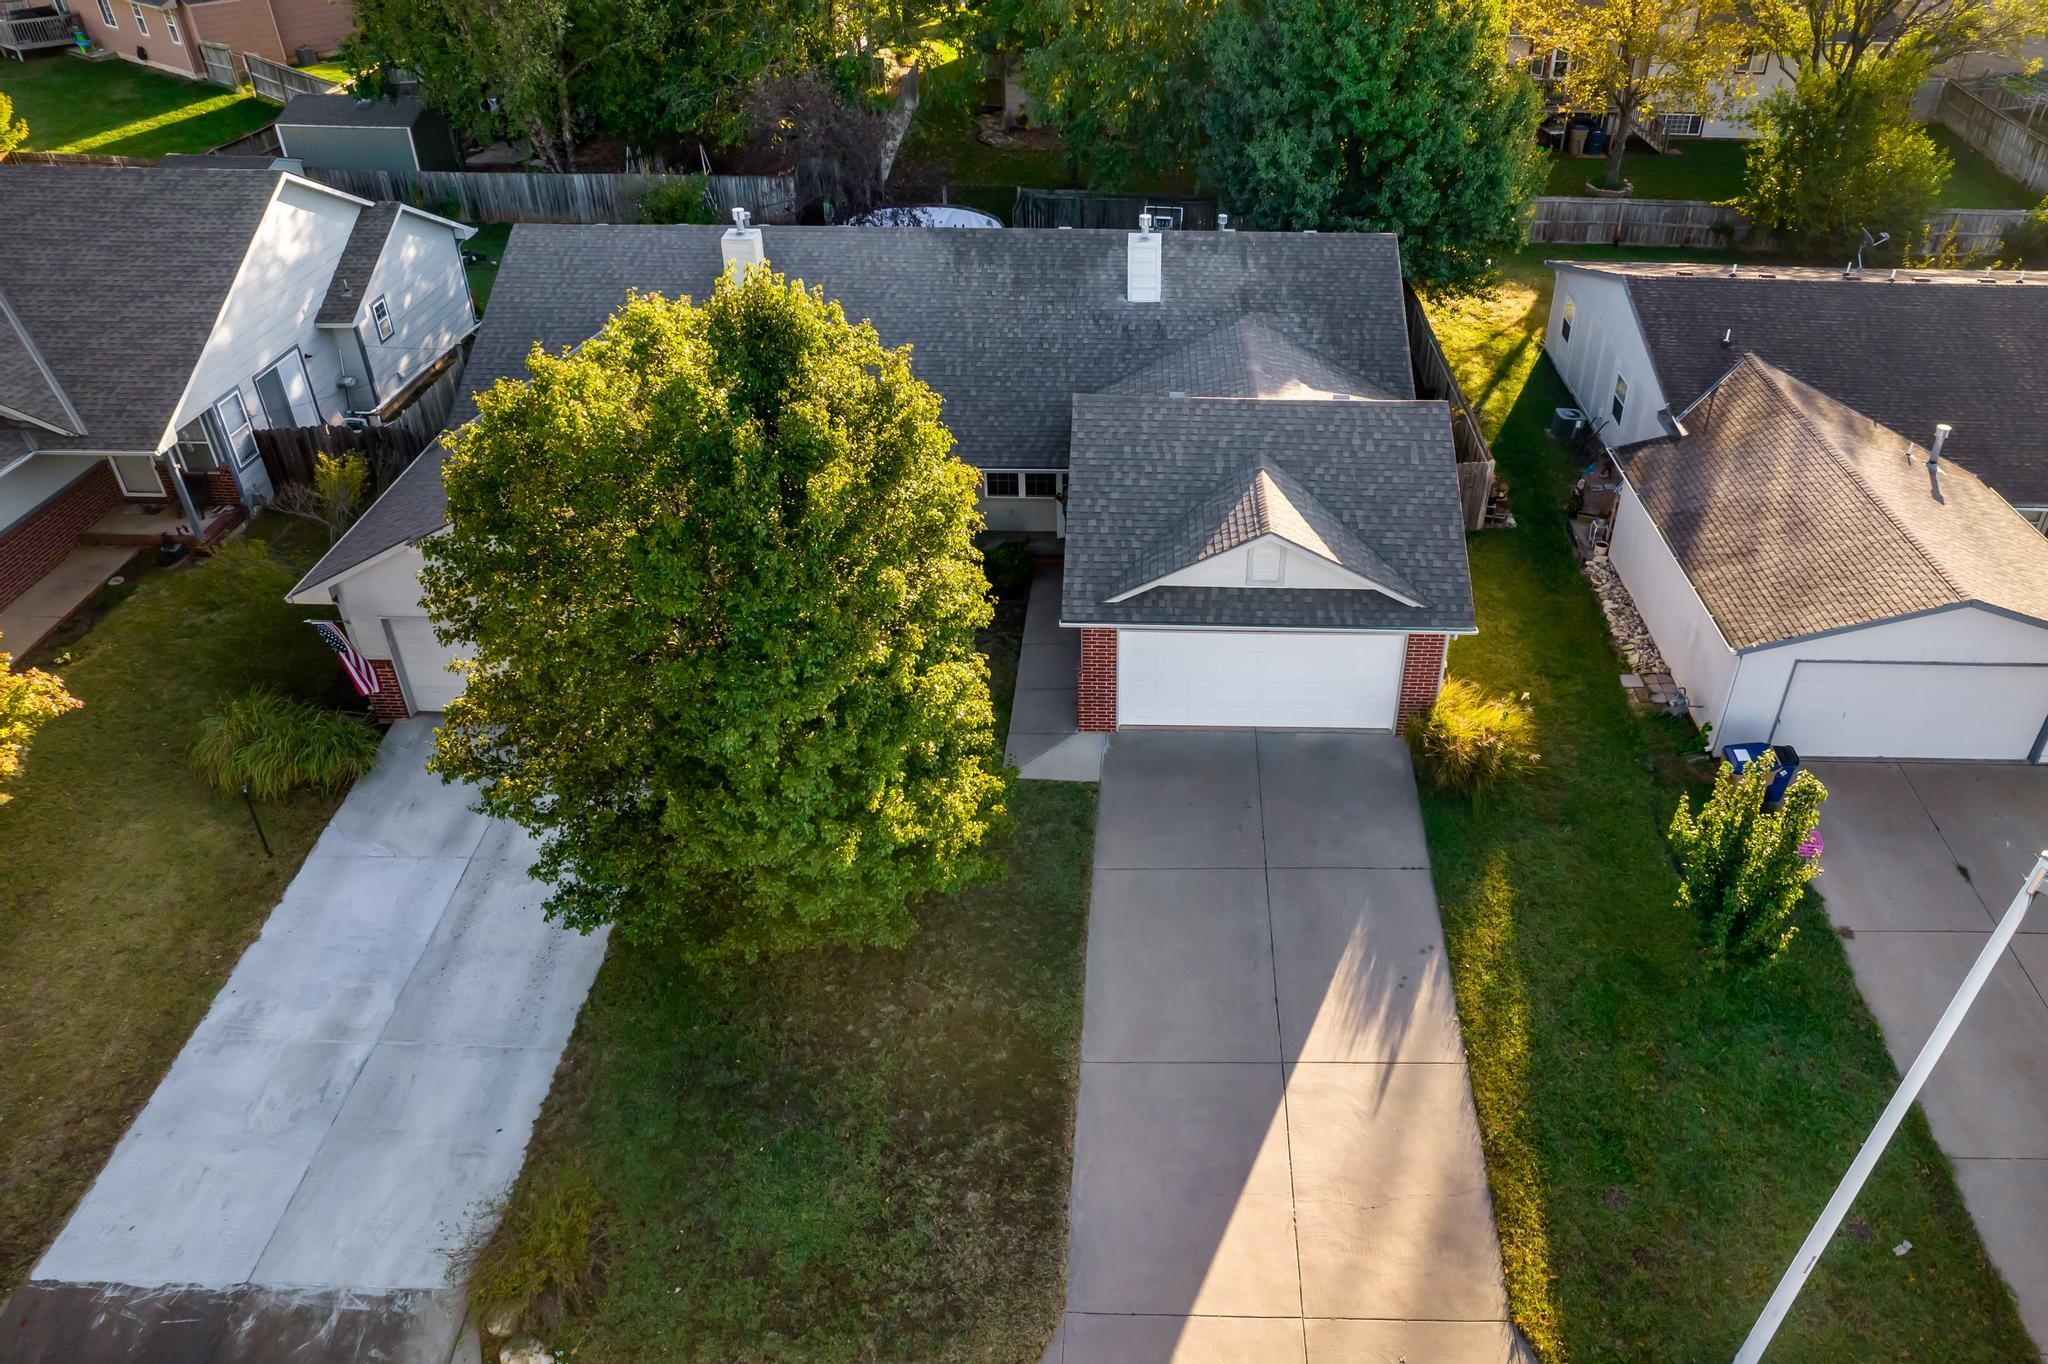 Check out this great twin home! When you first walk up to the front door, you will completly forget